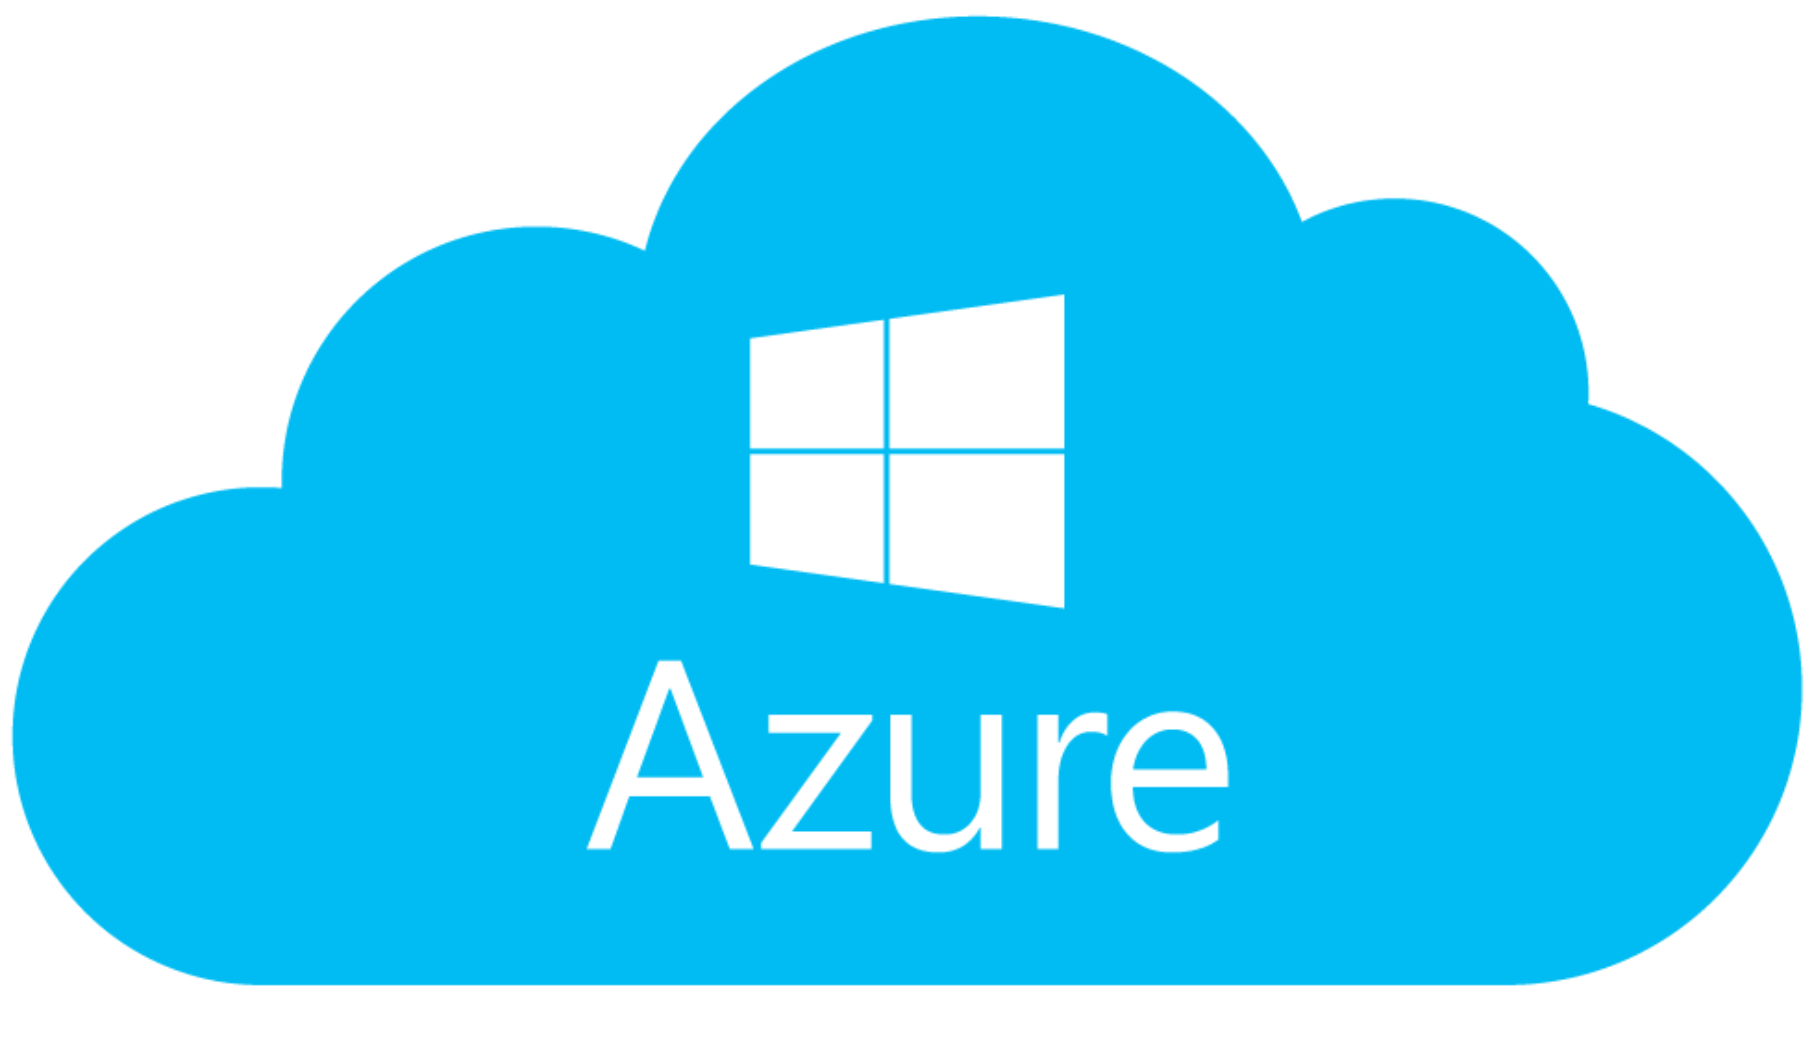 The logo of Microsoft's Azure Marketplace, where you can get started for free with ScaiData's self-service ScaiPlatform for cloud business intelligence and data management and connect to your existing Azure SQL infrastructure